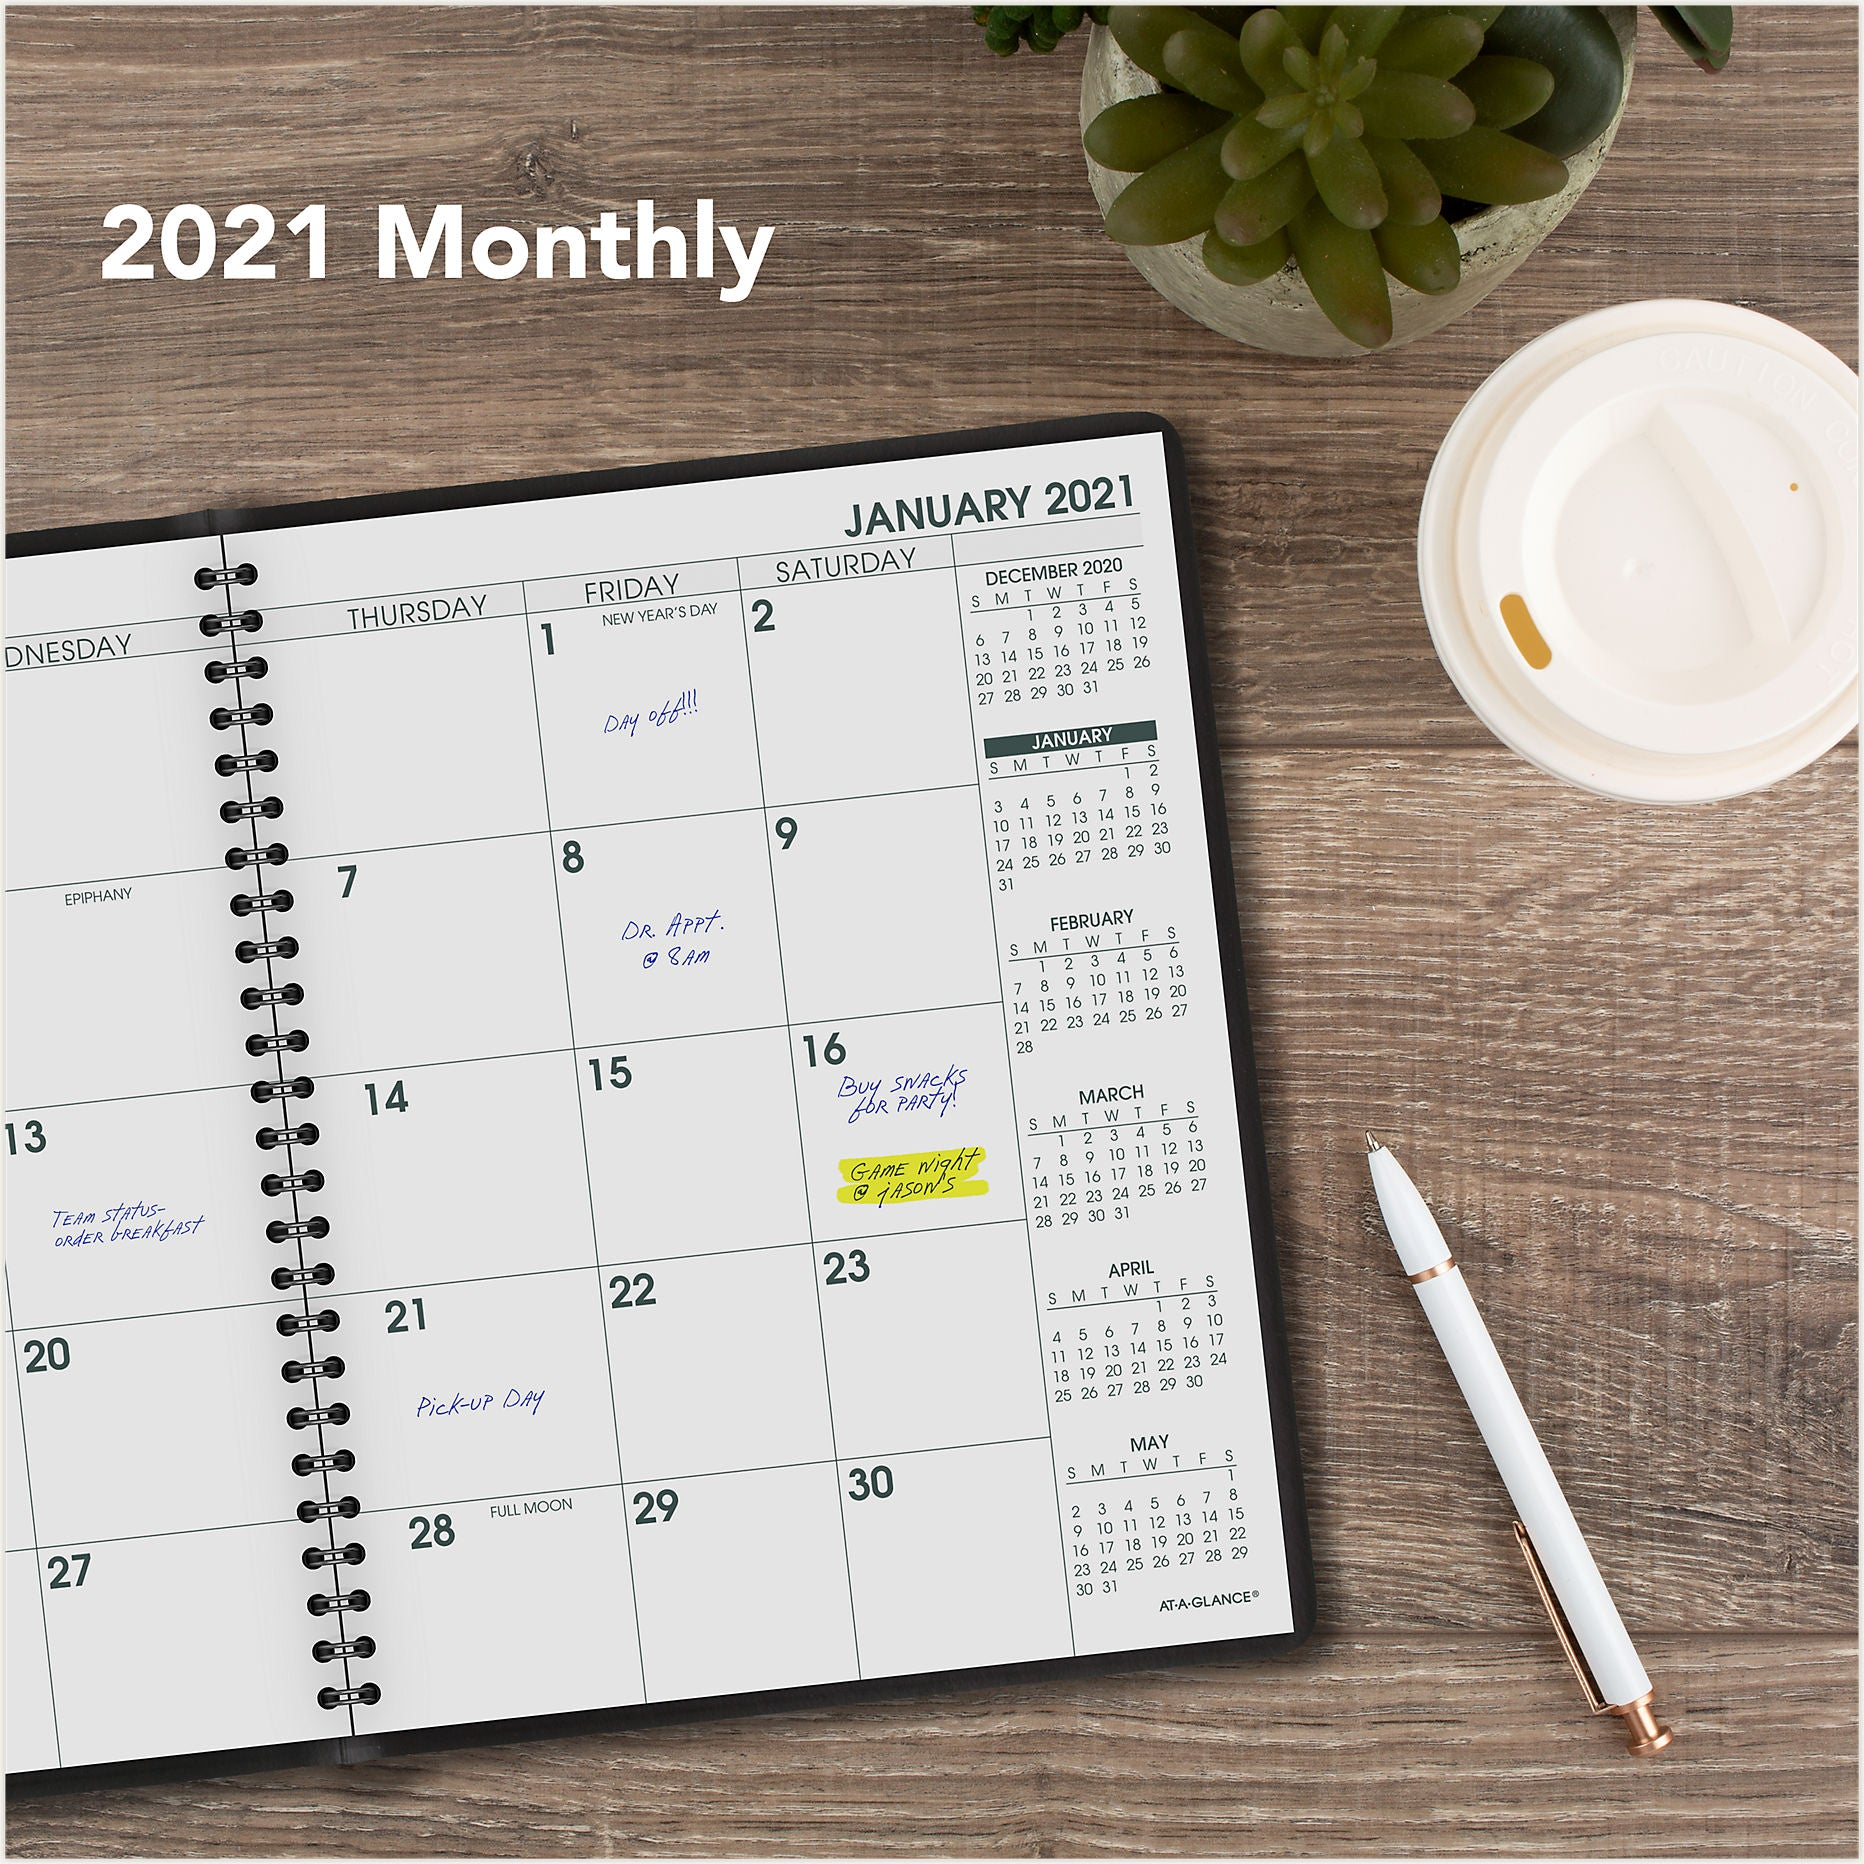 70-LP09-05 LARGE PRINT AT A GLANCE CALENDARS 2021